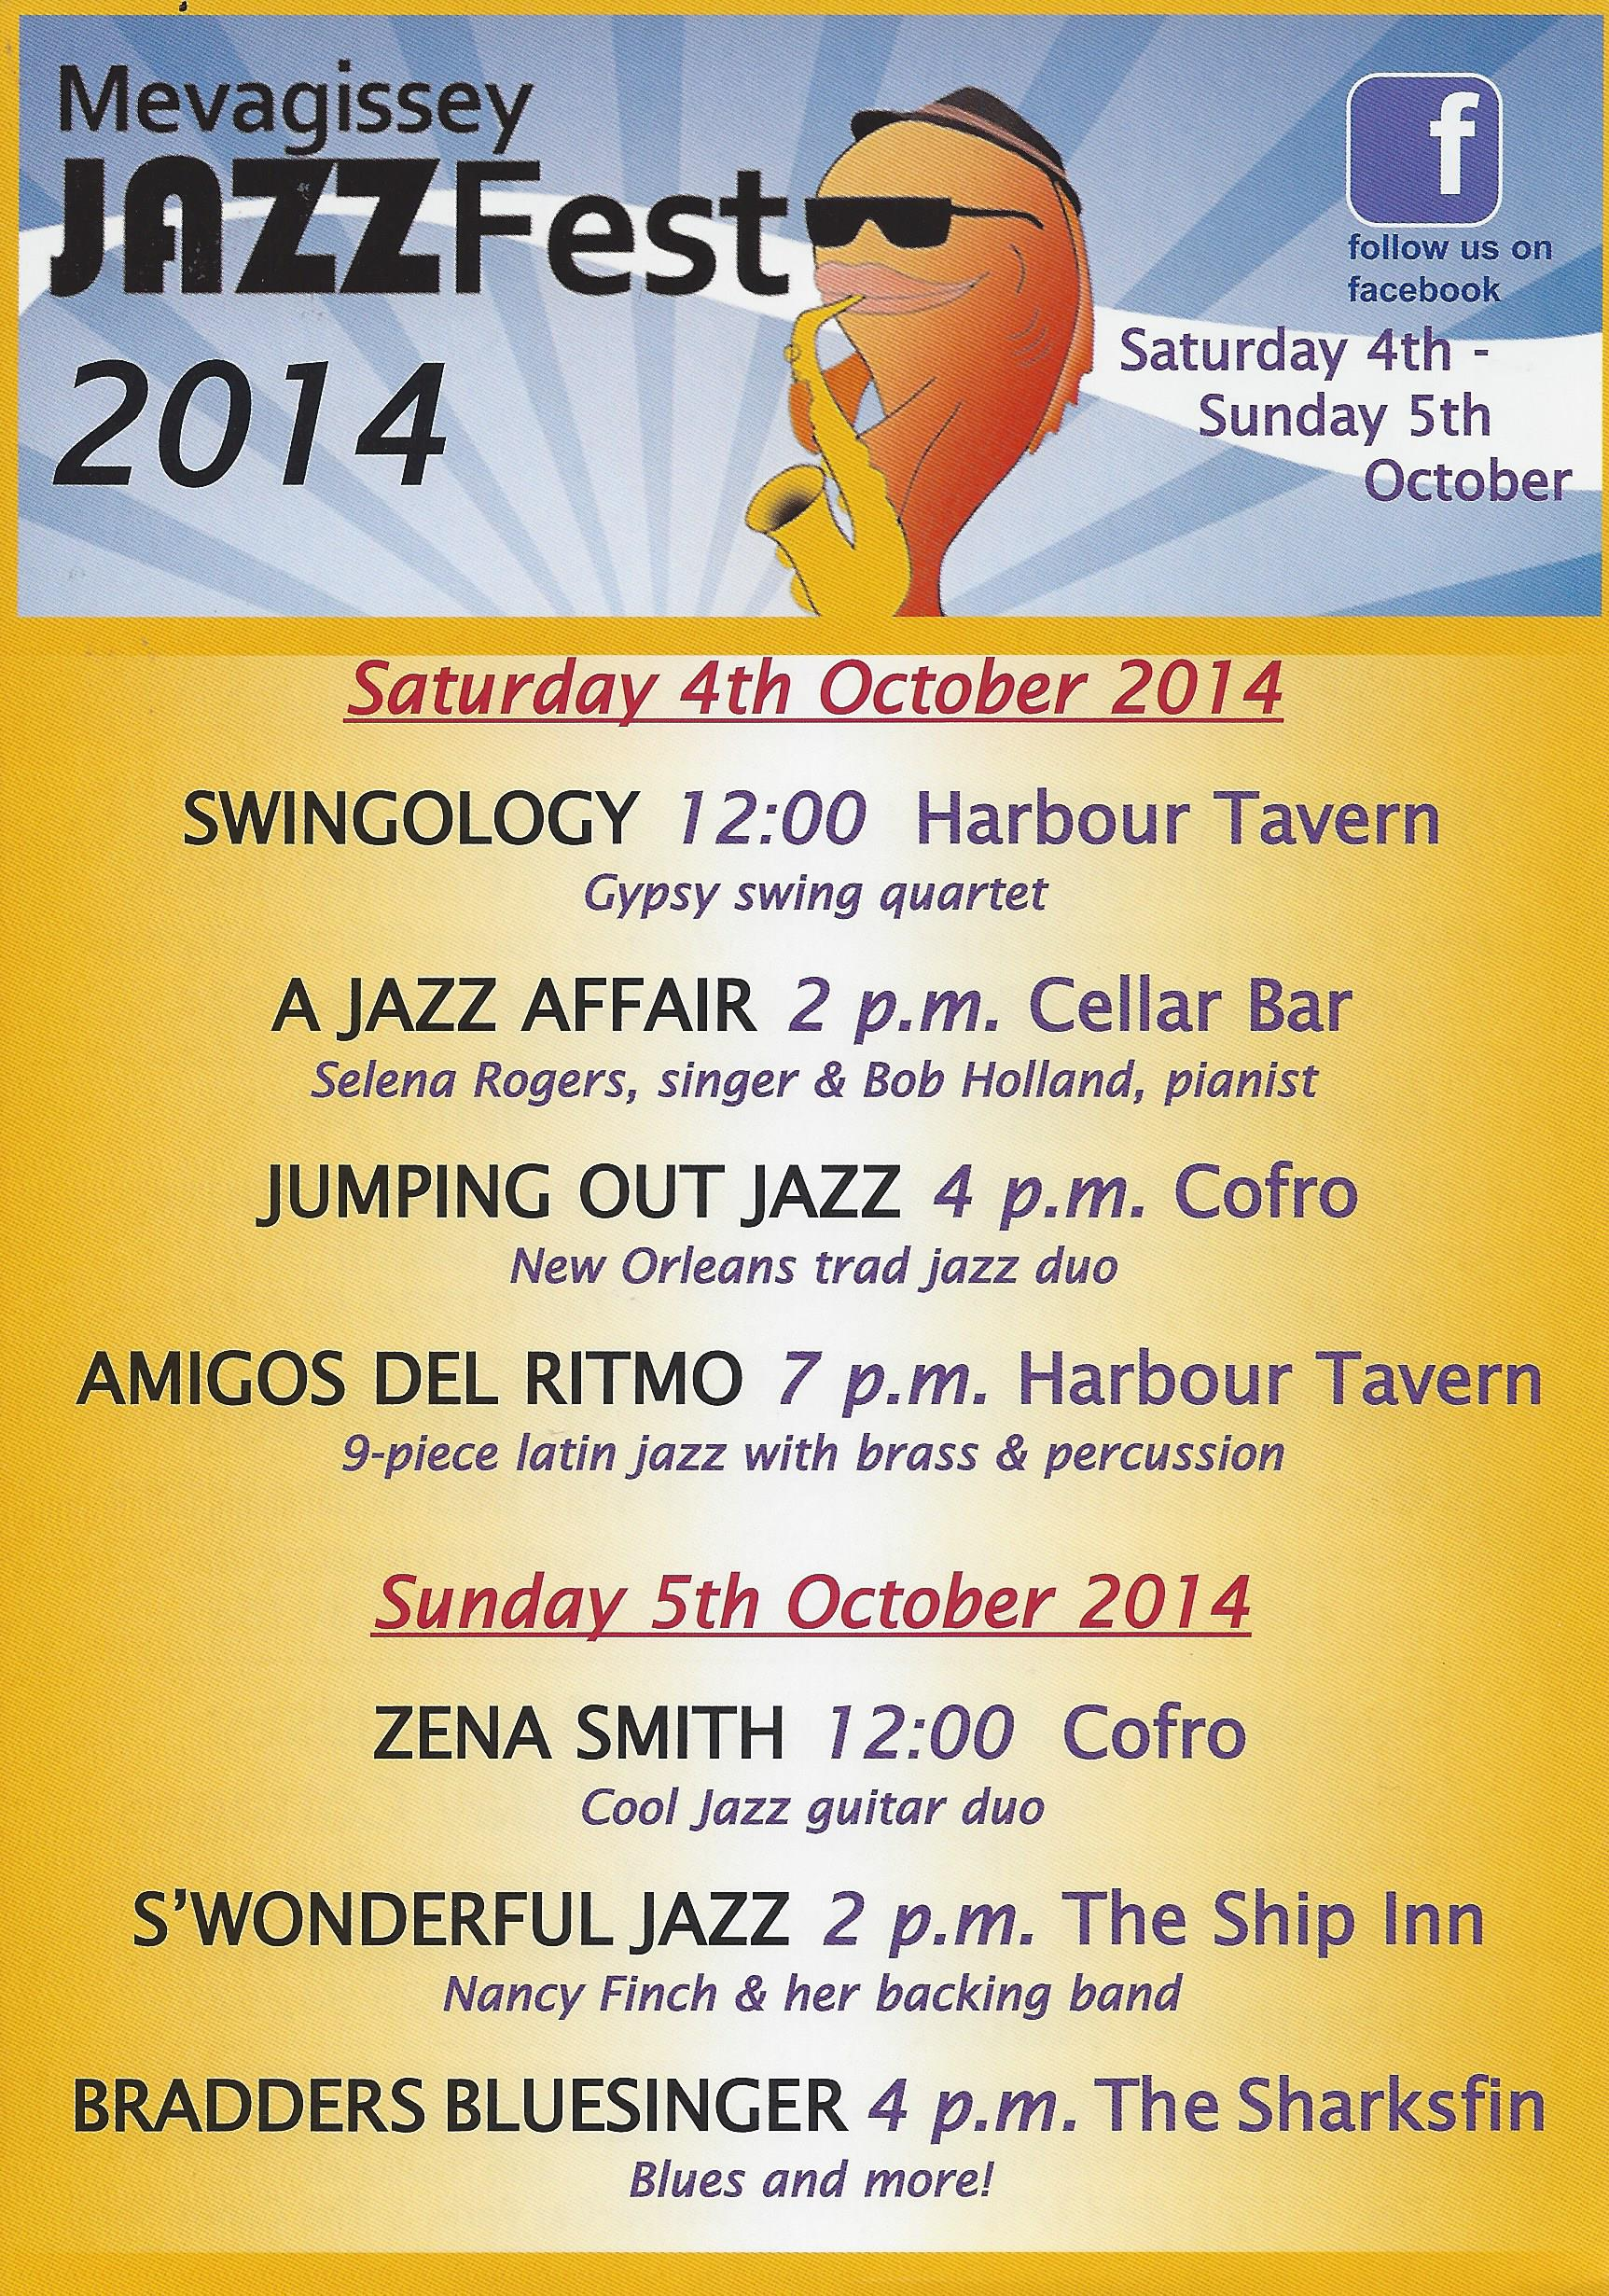 Mevagissey Jazz Festival 2014 | Harbour Tavern Cofro Sharksfin Ship Inn Cellar Bar Blues Swing Acoustic Scat | Cormorant Hotel & Restaurant Golant Fowey Cornwall